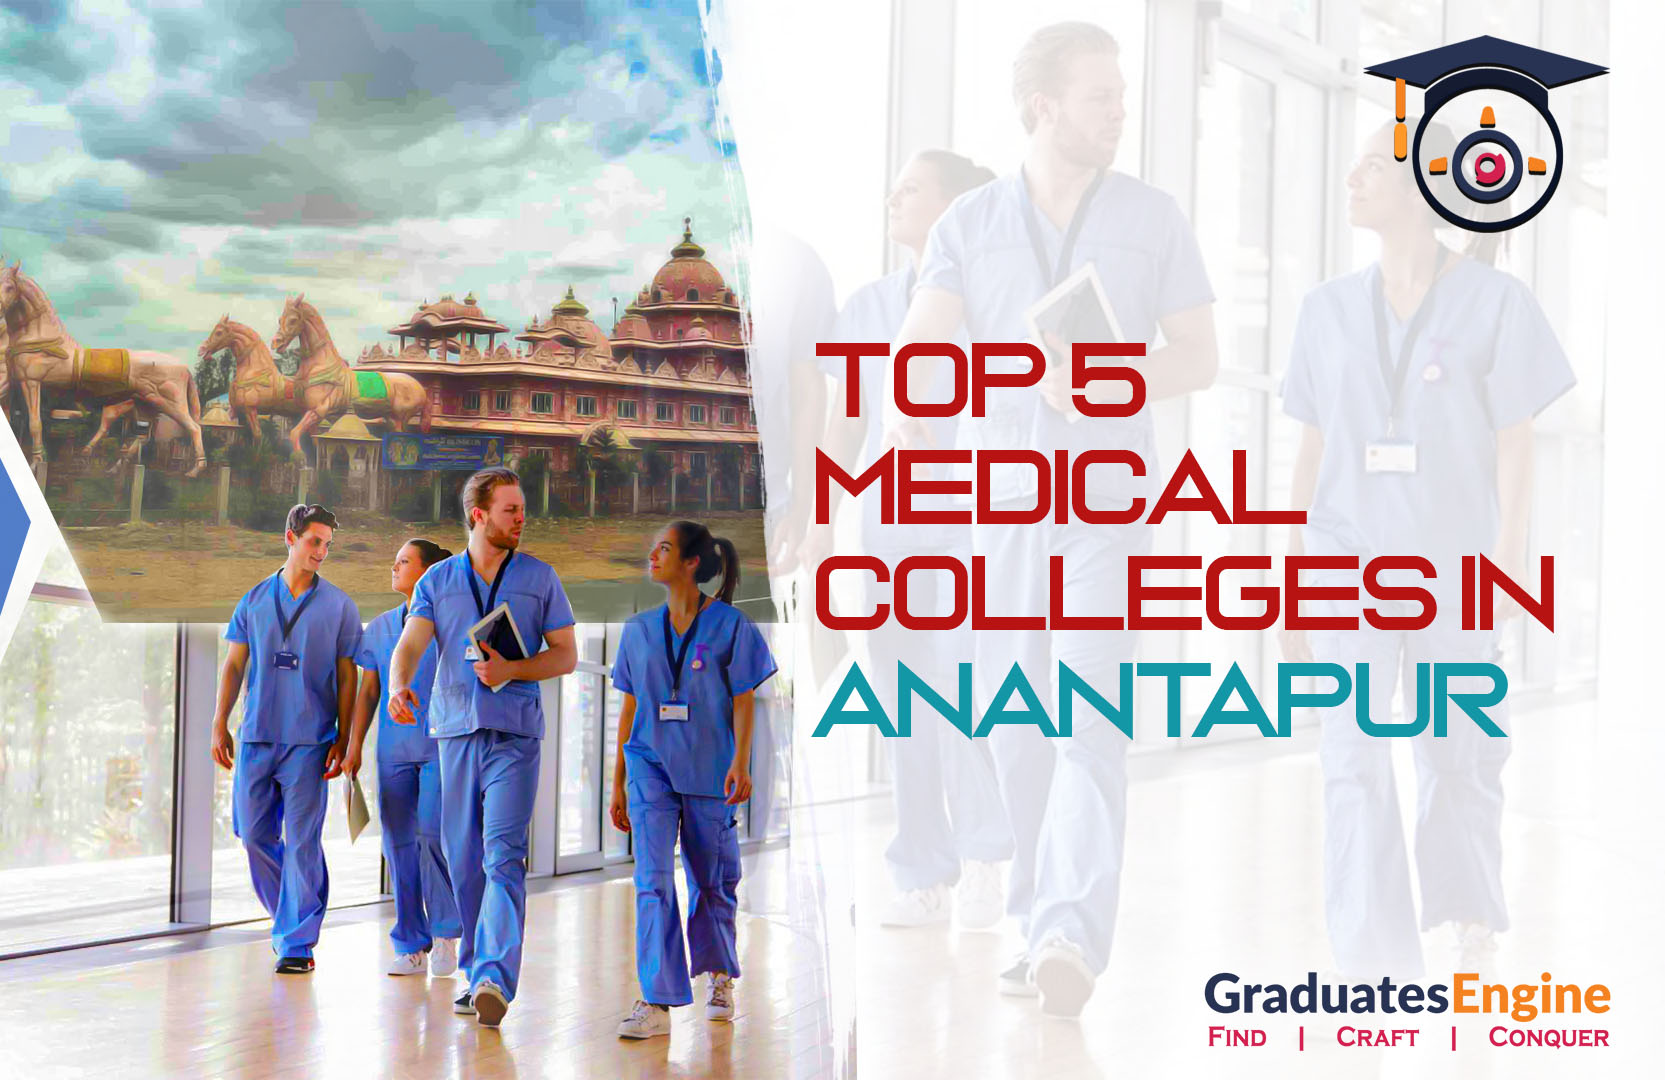 Top 5 Medical Colleges in Anantapur